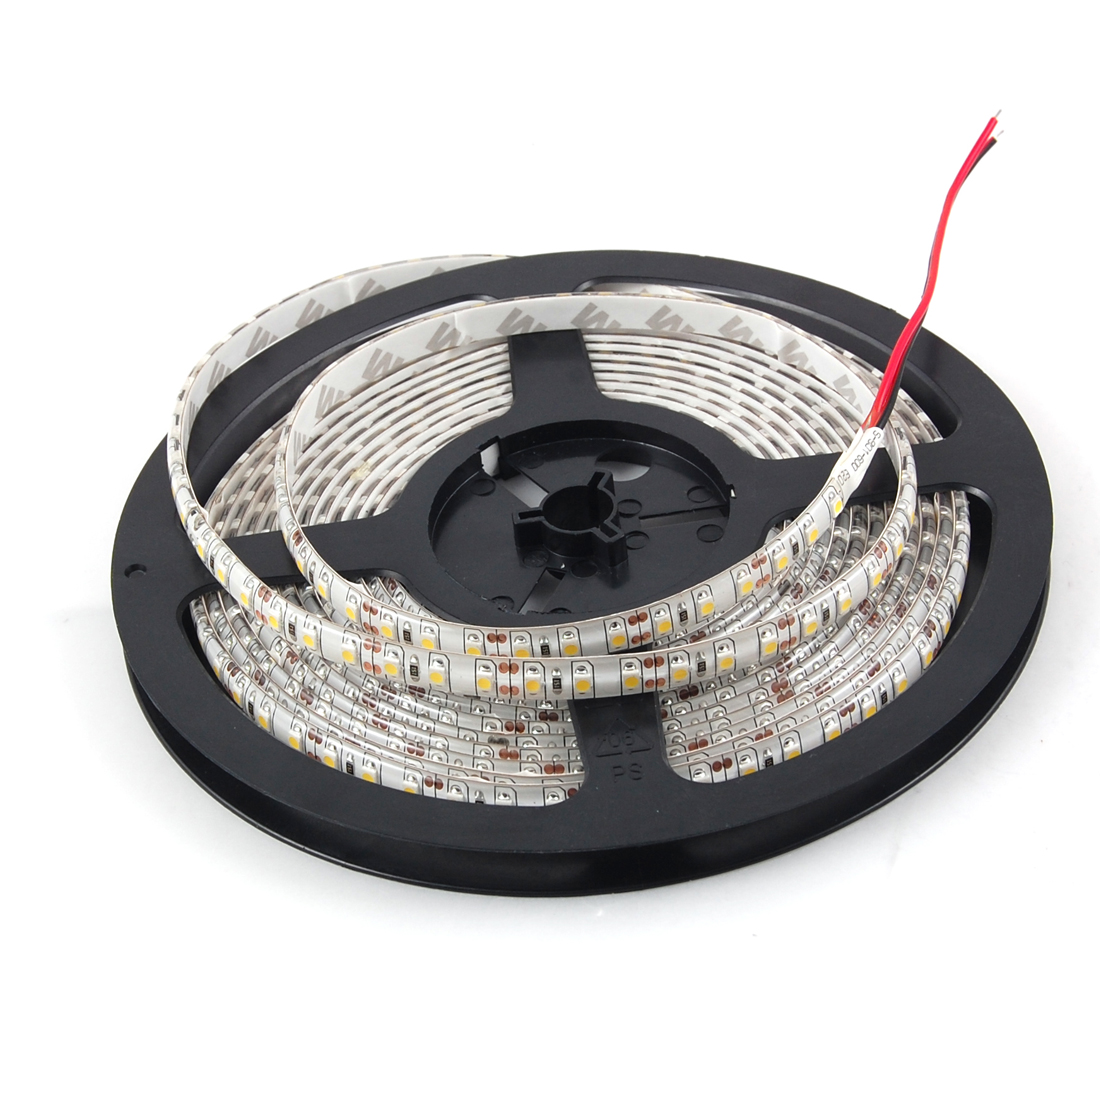 Car Auto 5M 3528 SMD 600 LEDs Flexible Strip White Light DC 12V internal